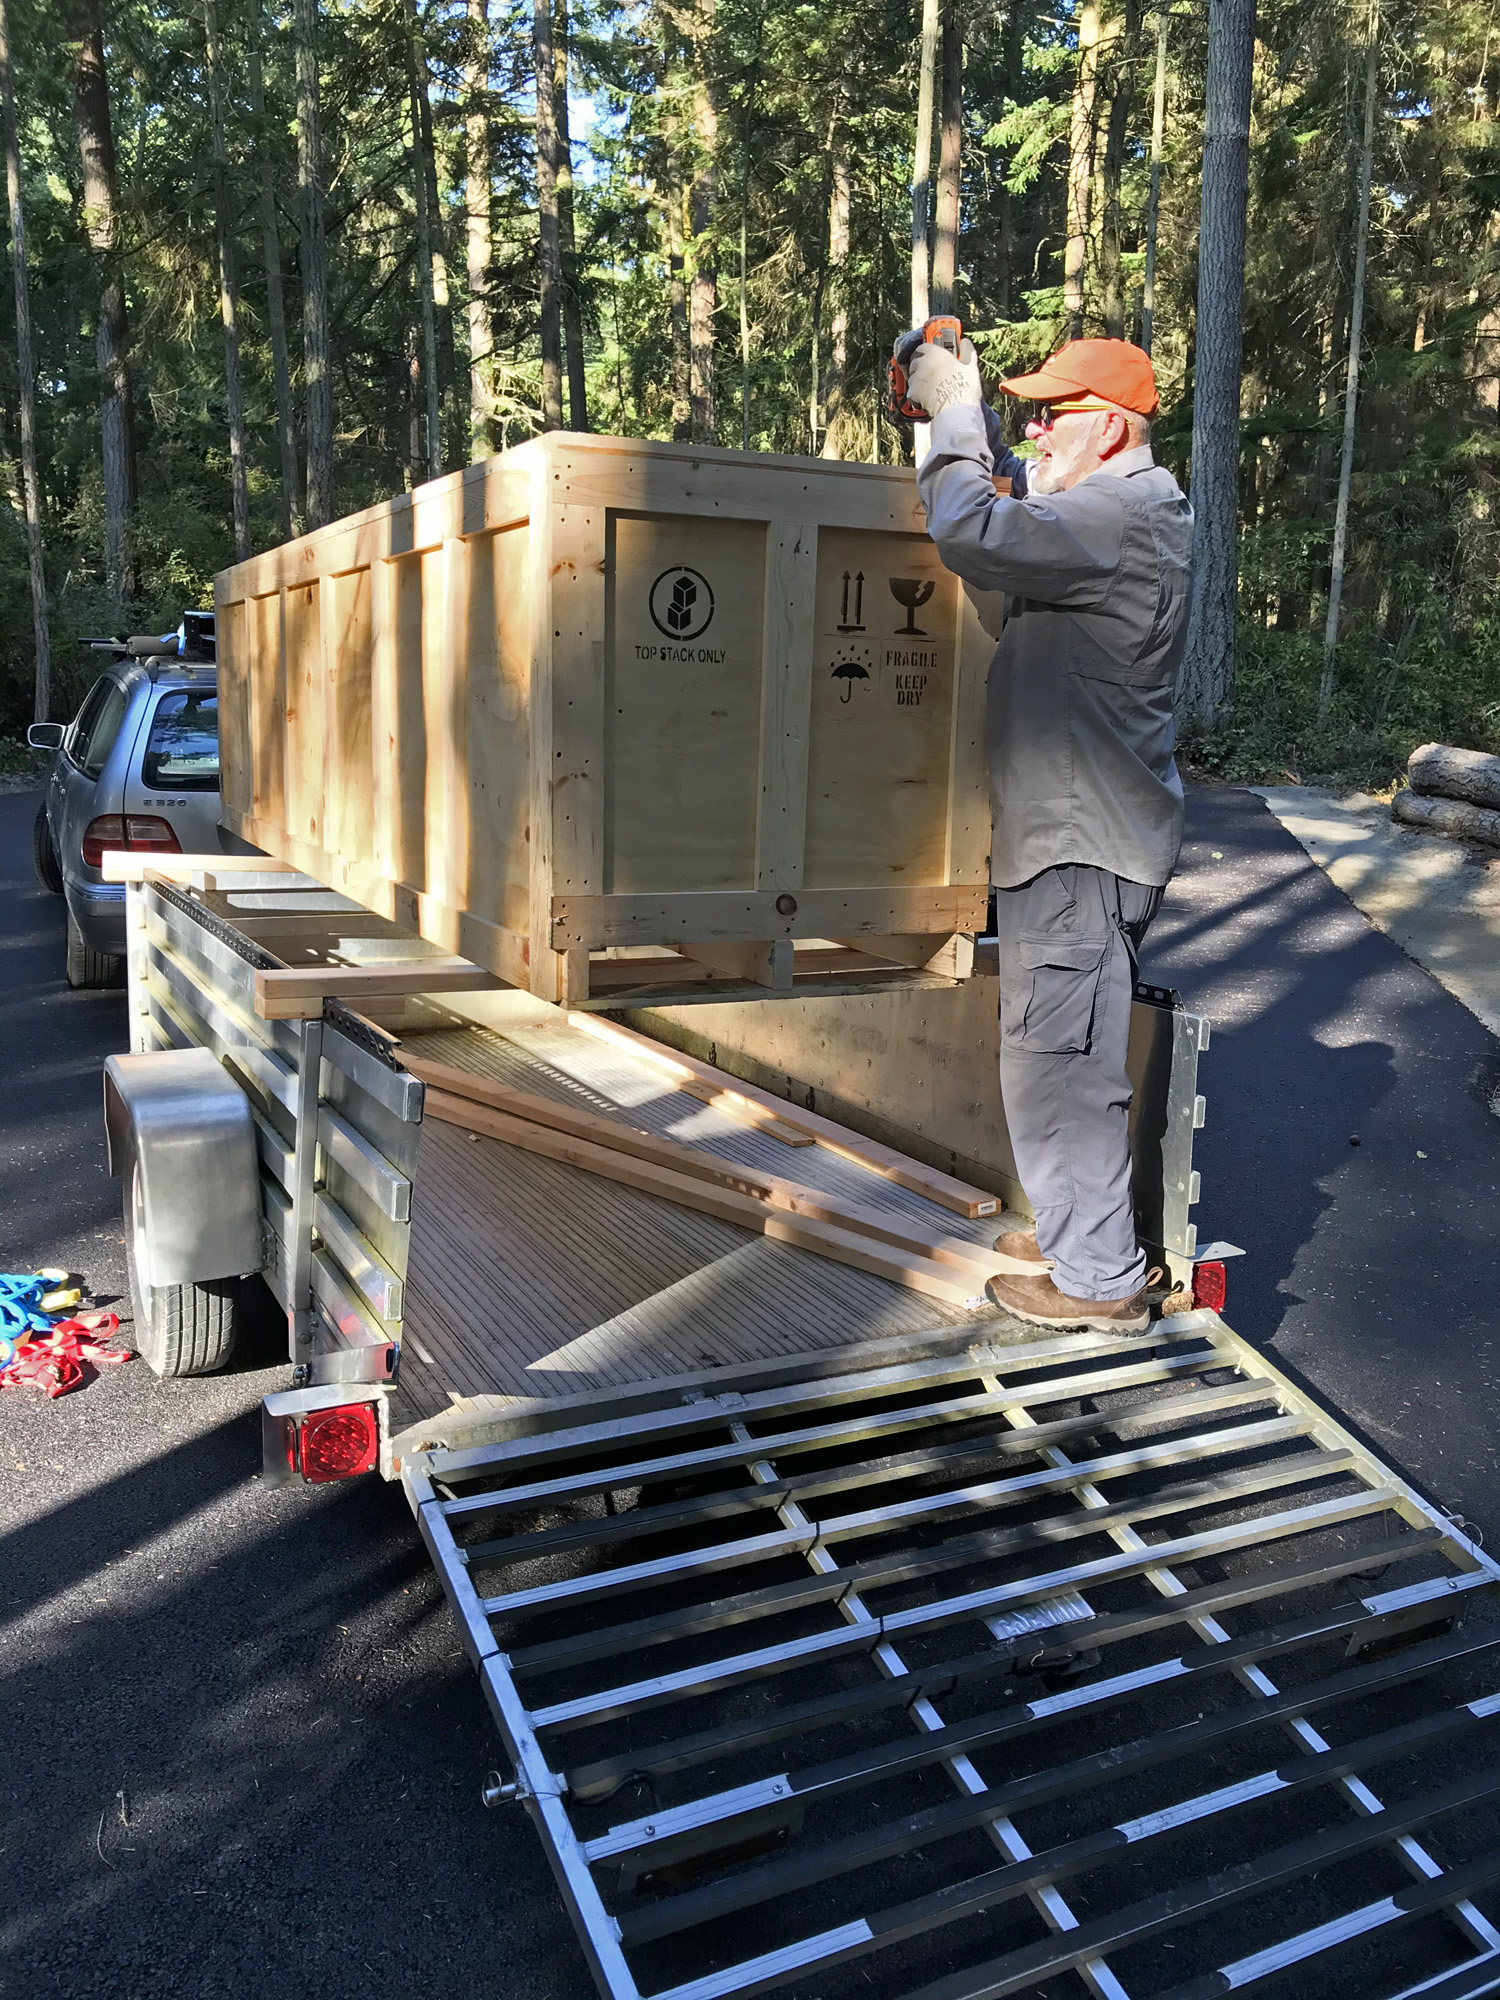 Ken Price opening crate for Jeff Kahn Wind Shear at Price Sculpture Forest sculpture park Coupeville Whidbey Island